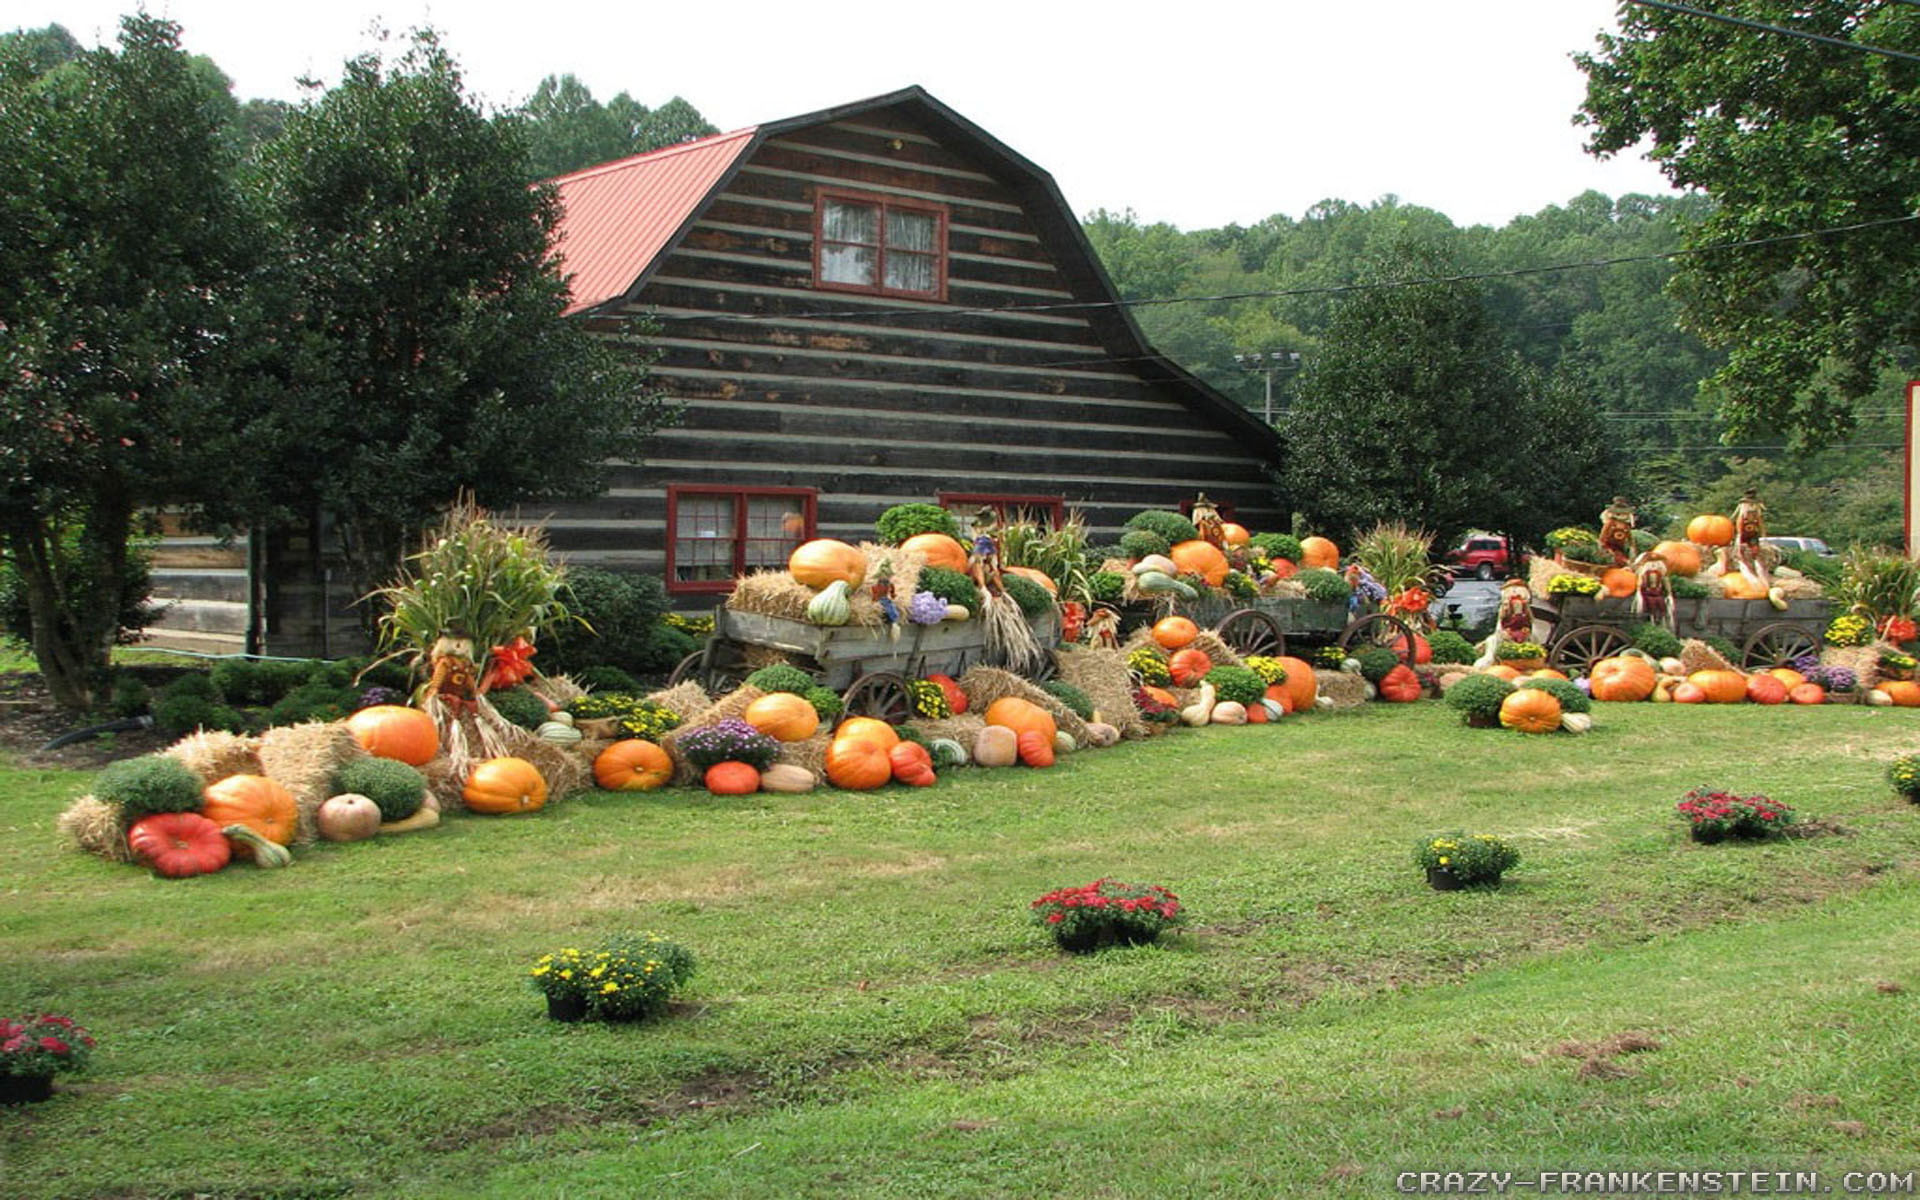 Res: 1920x1200, Wallpaper: Thanksgiving day scene wallpapers. Resolution: 1024x768 |  1280x1024 | 1600x1200. Widescreen Res: 1440x900 | 1680x1050 |